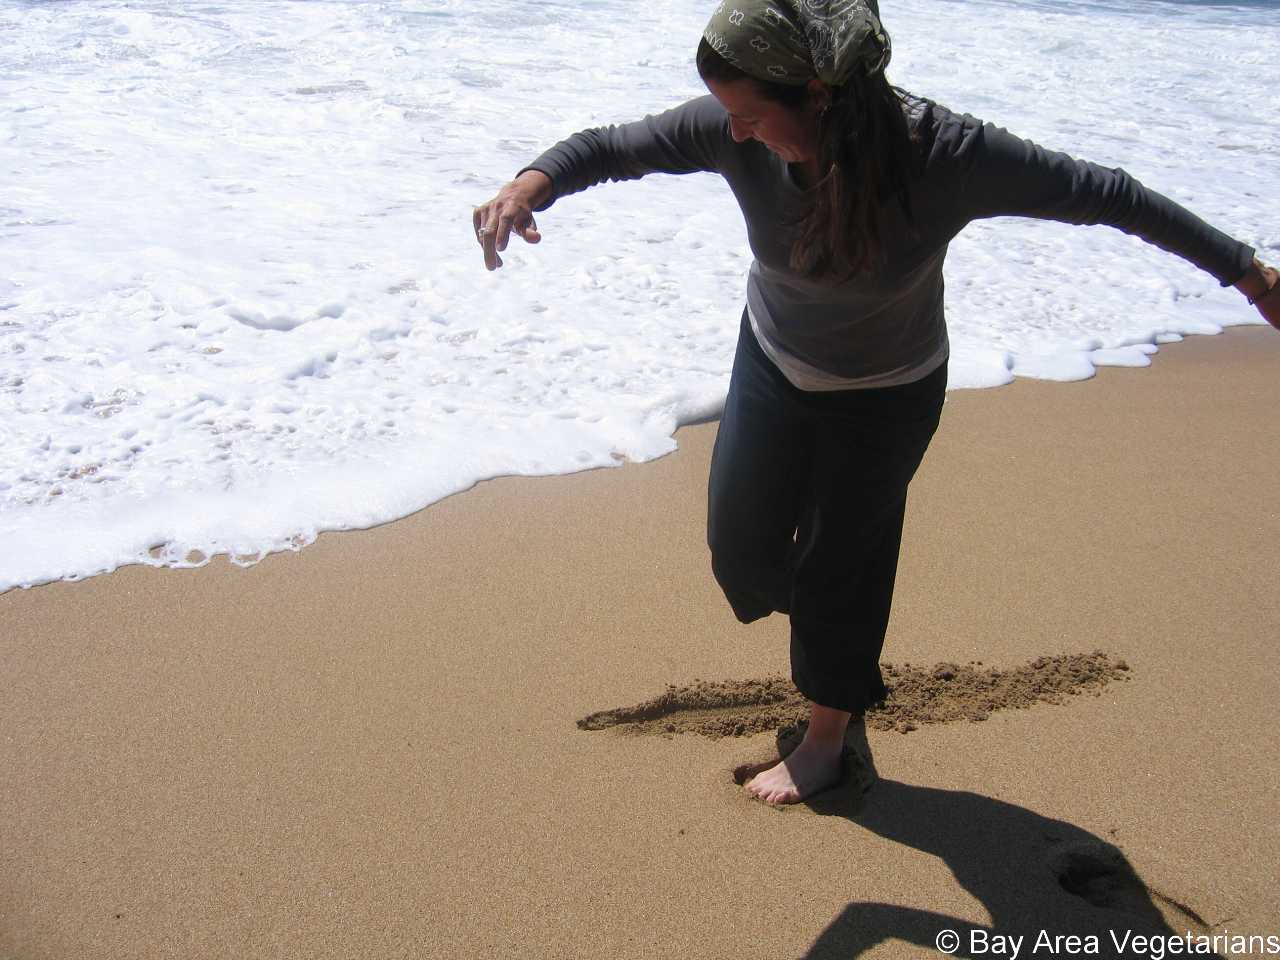 Big Girl, Sand, Surf